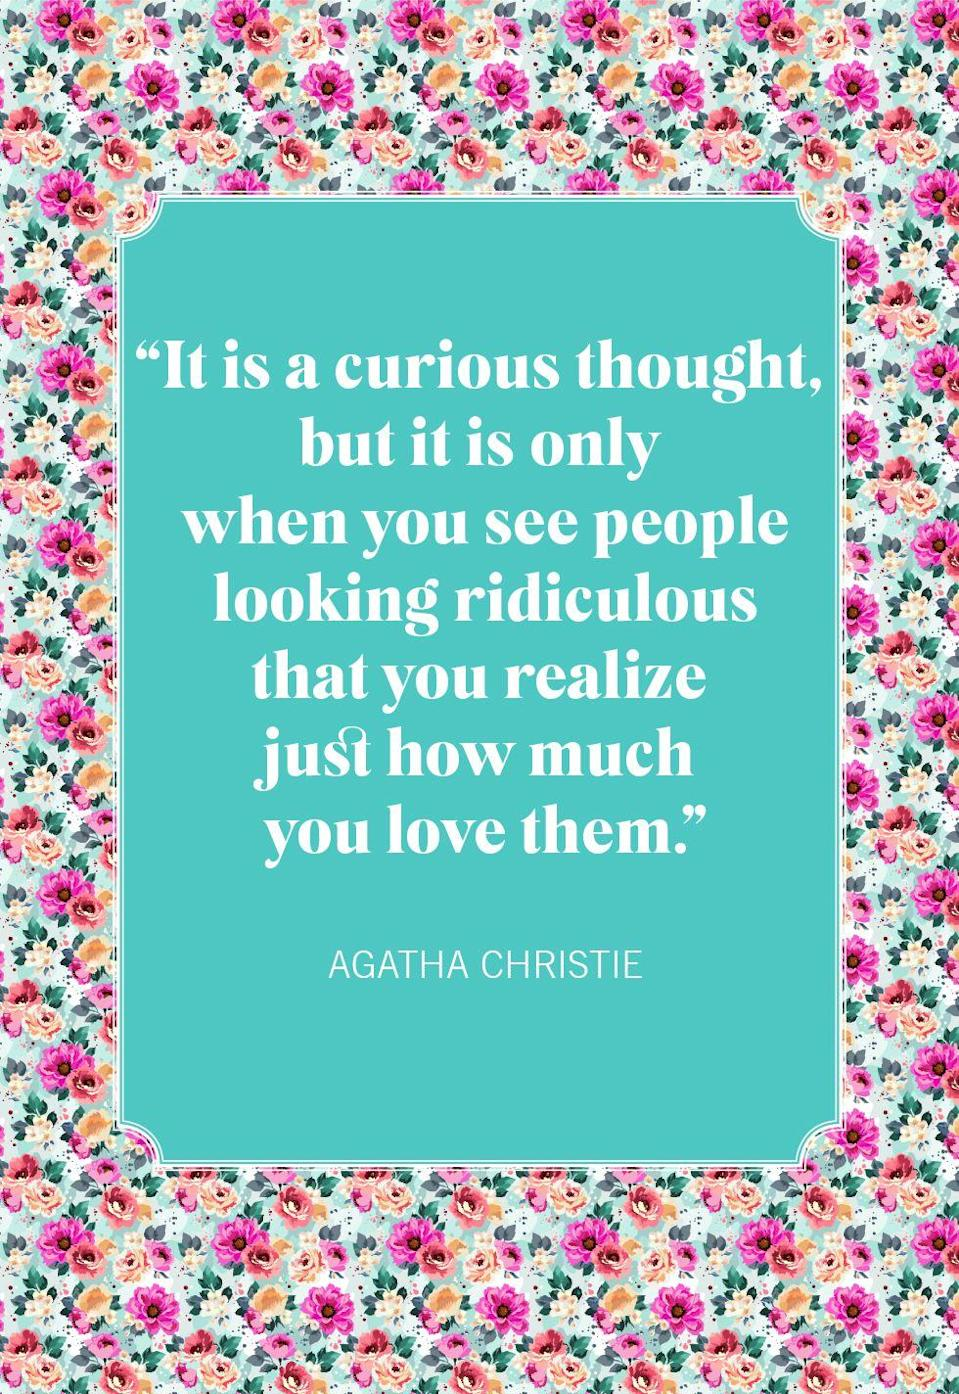 """<p>""""It is a curious thought, but it is only when you see people looking ridiculous that you realize just how much you love them.""""</p>"""